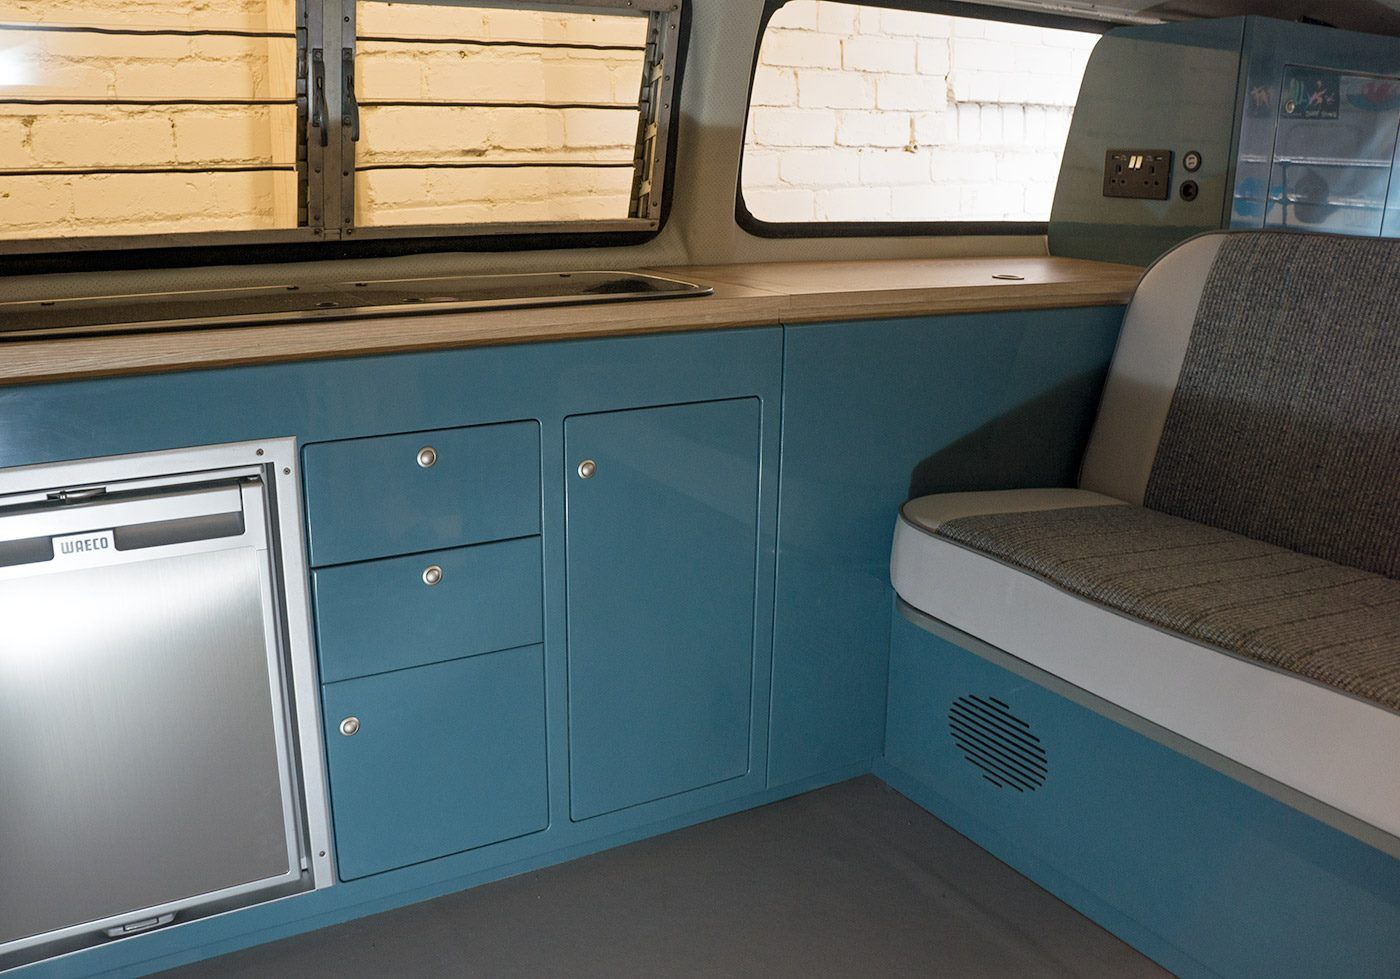 Dubteriors t2 bay window interior in vw neptune blue with for Bay window interior